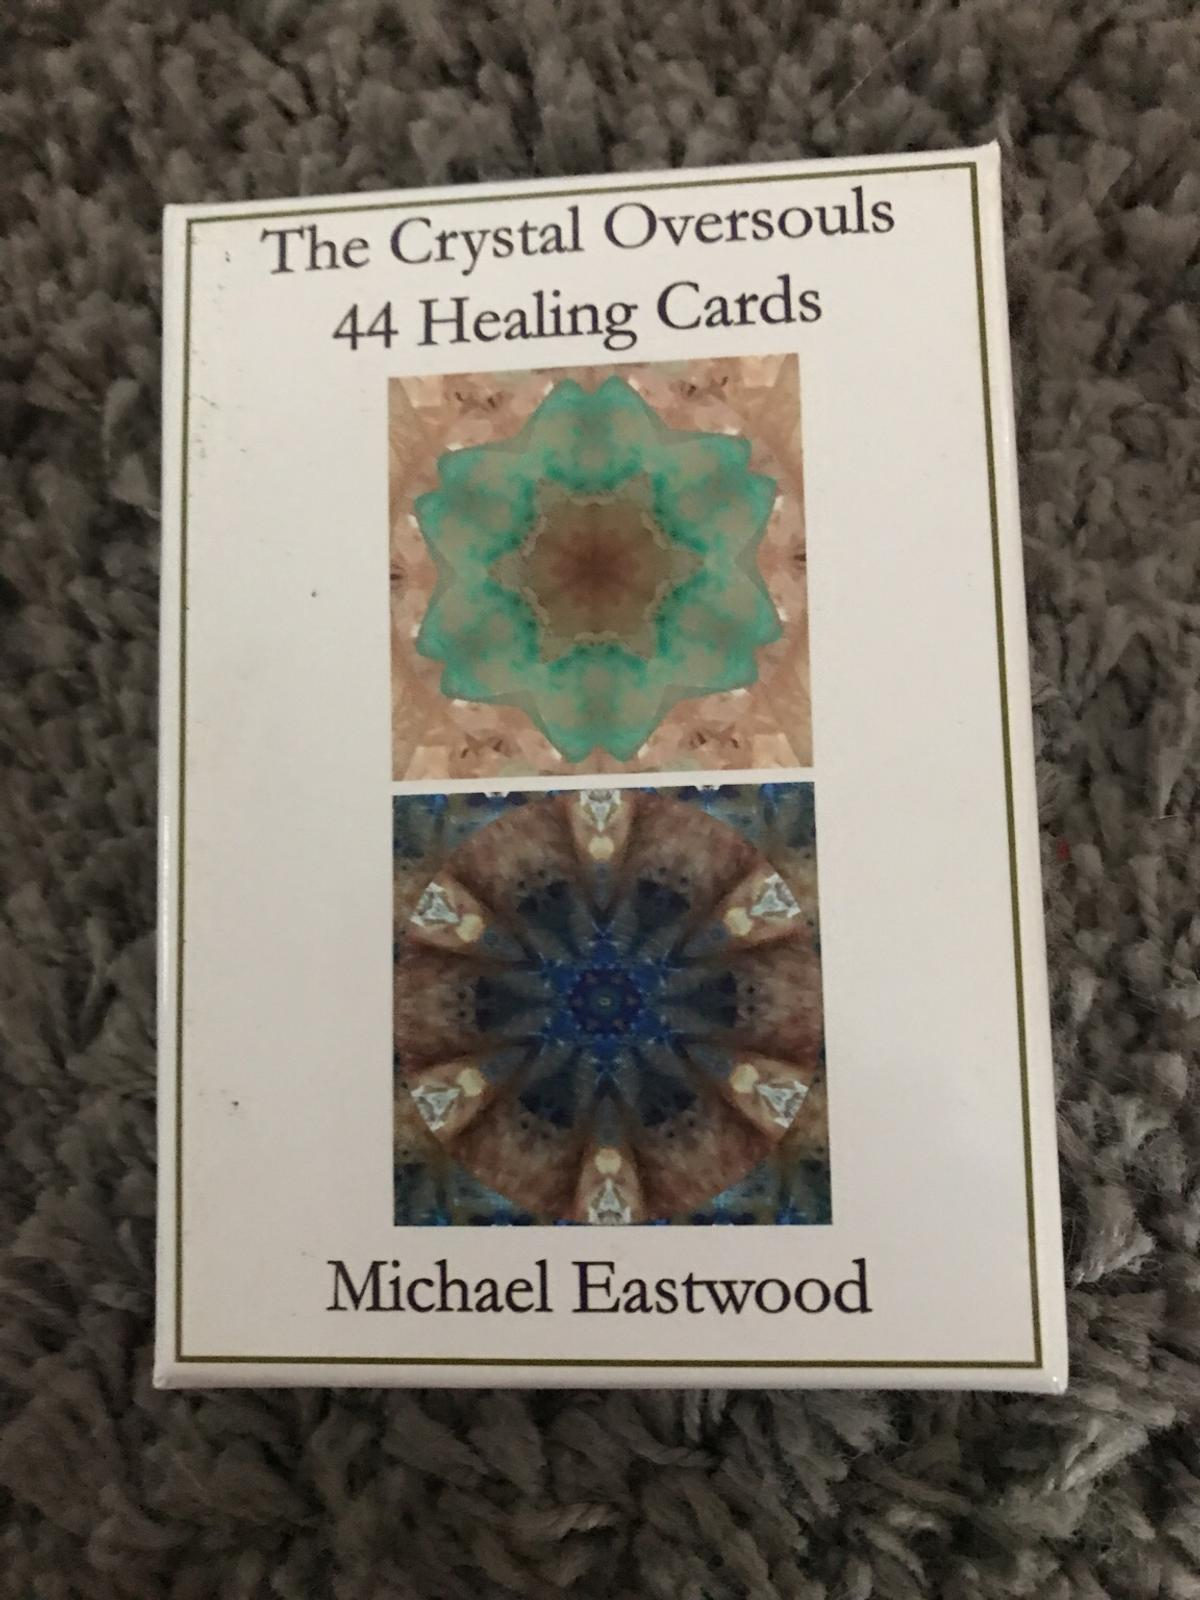 Crystal healing cards in DY3 Dudley for £4 00 for sale - Shpock